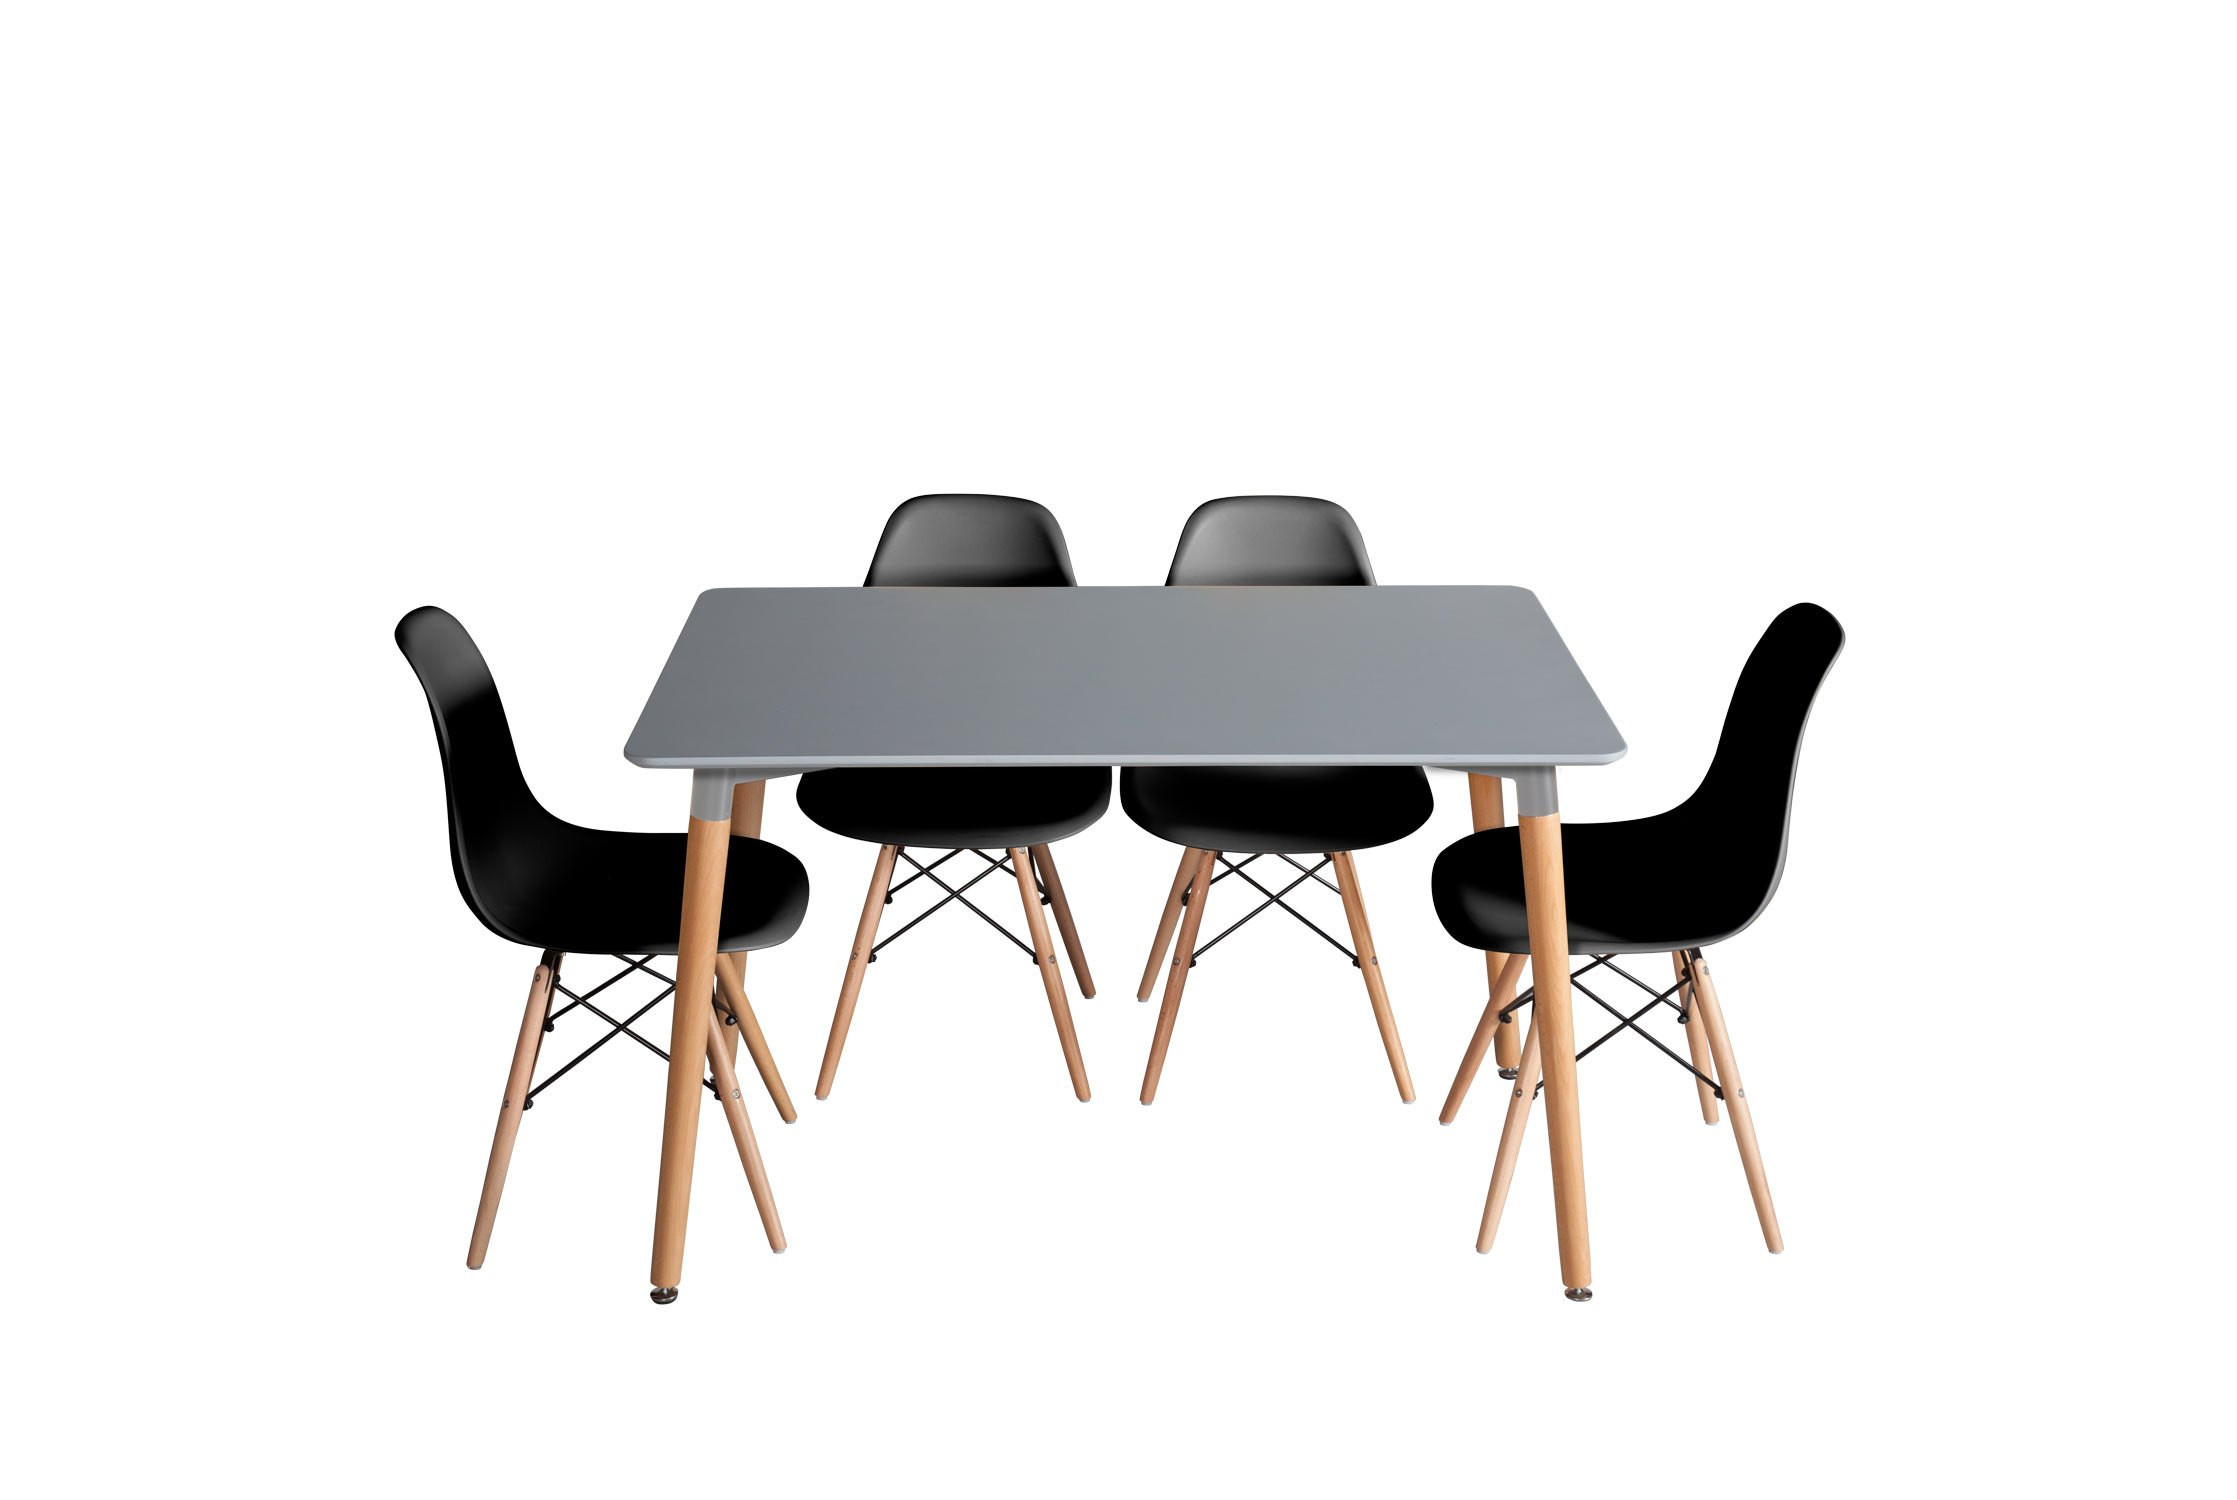 PACK MESA BEECH GRIS Y 4 SILLAS TOWER WOOD NEGRAS